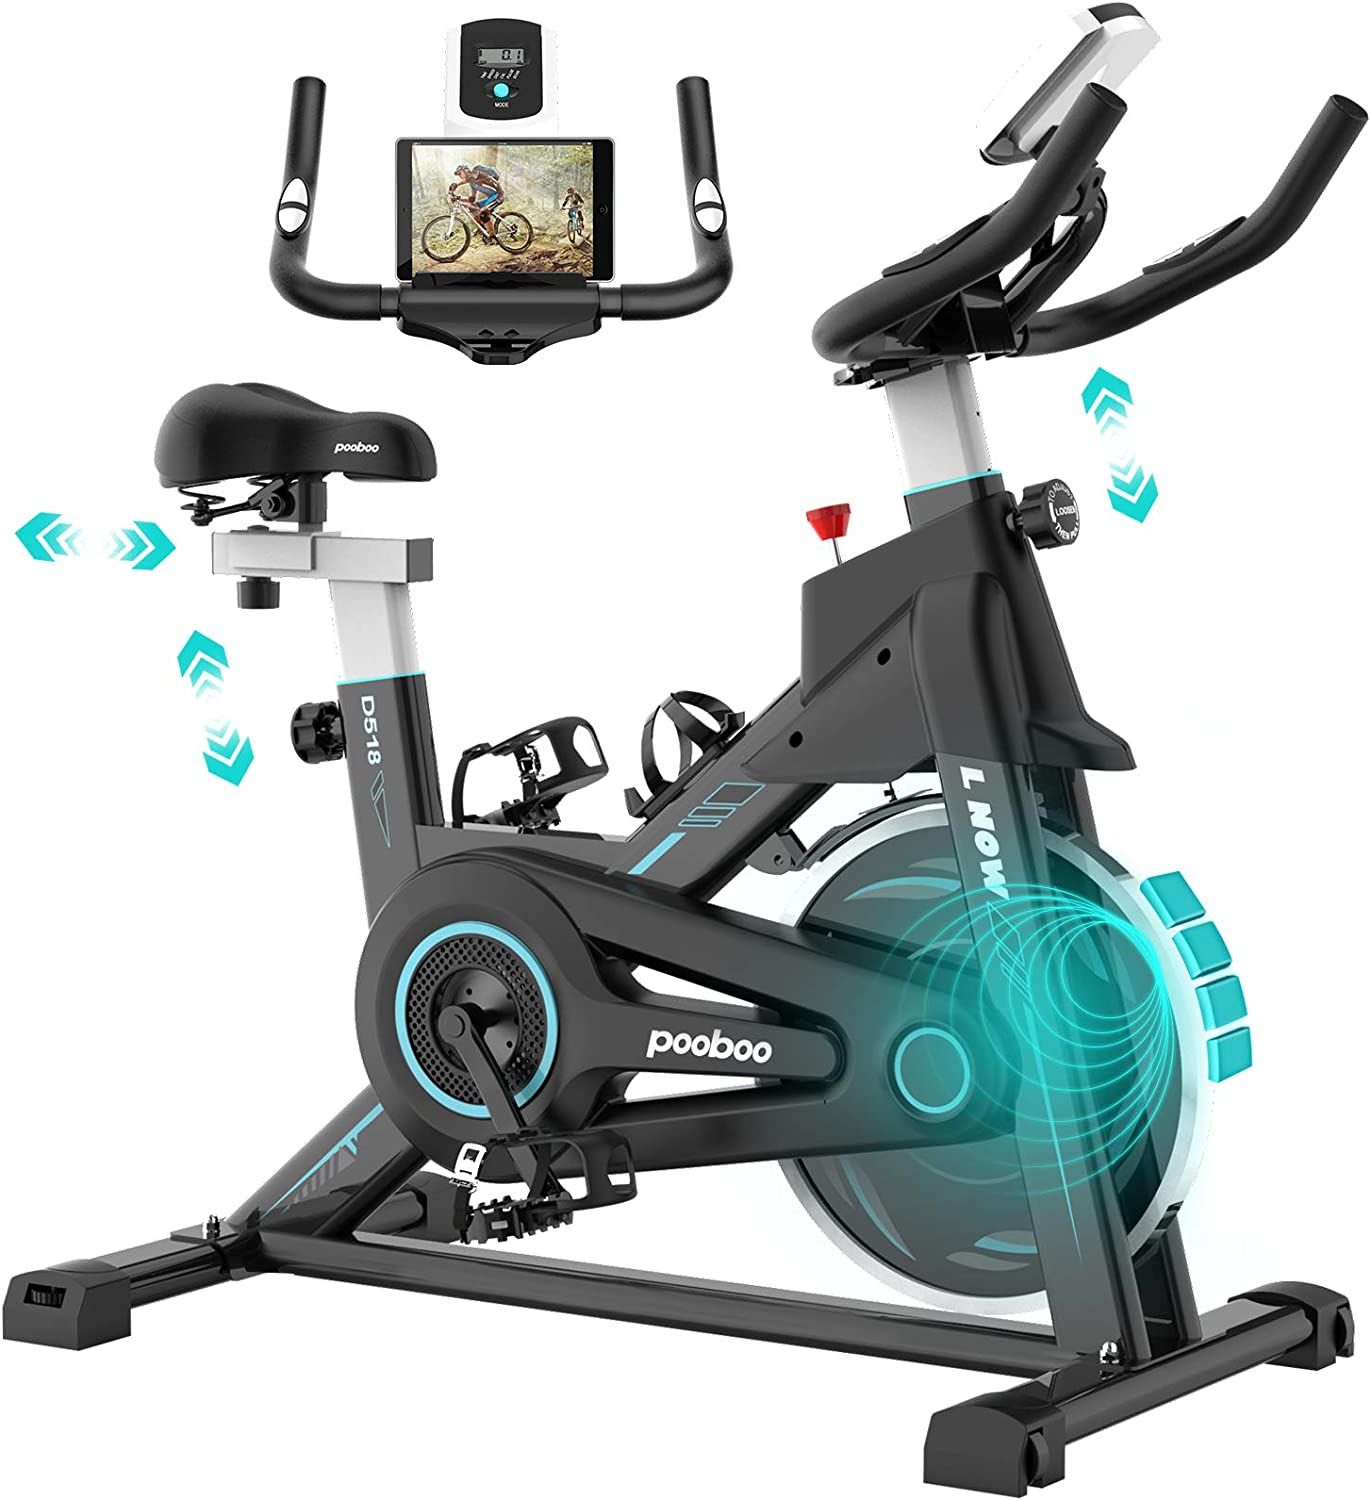 pooboo Magnetic Exercise Bike Indoor Cycling Bike Stationary, Adjustable Seat & Handlebar, Stationary bike with LCD Monitor & Device Holder, Smooth Quiet Home Workout